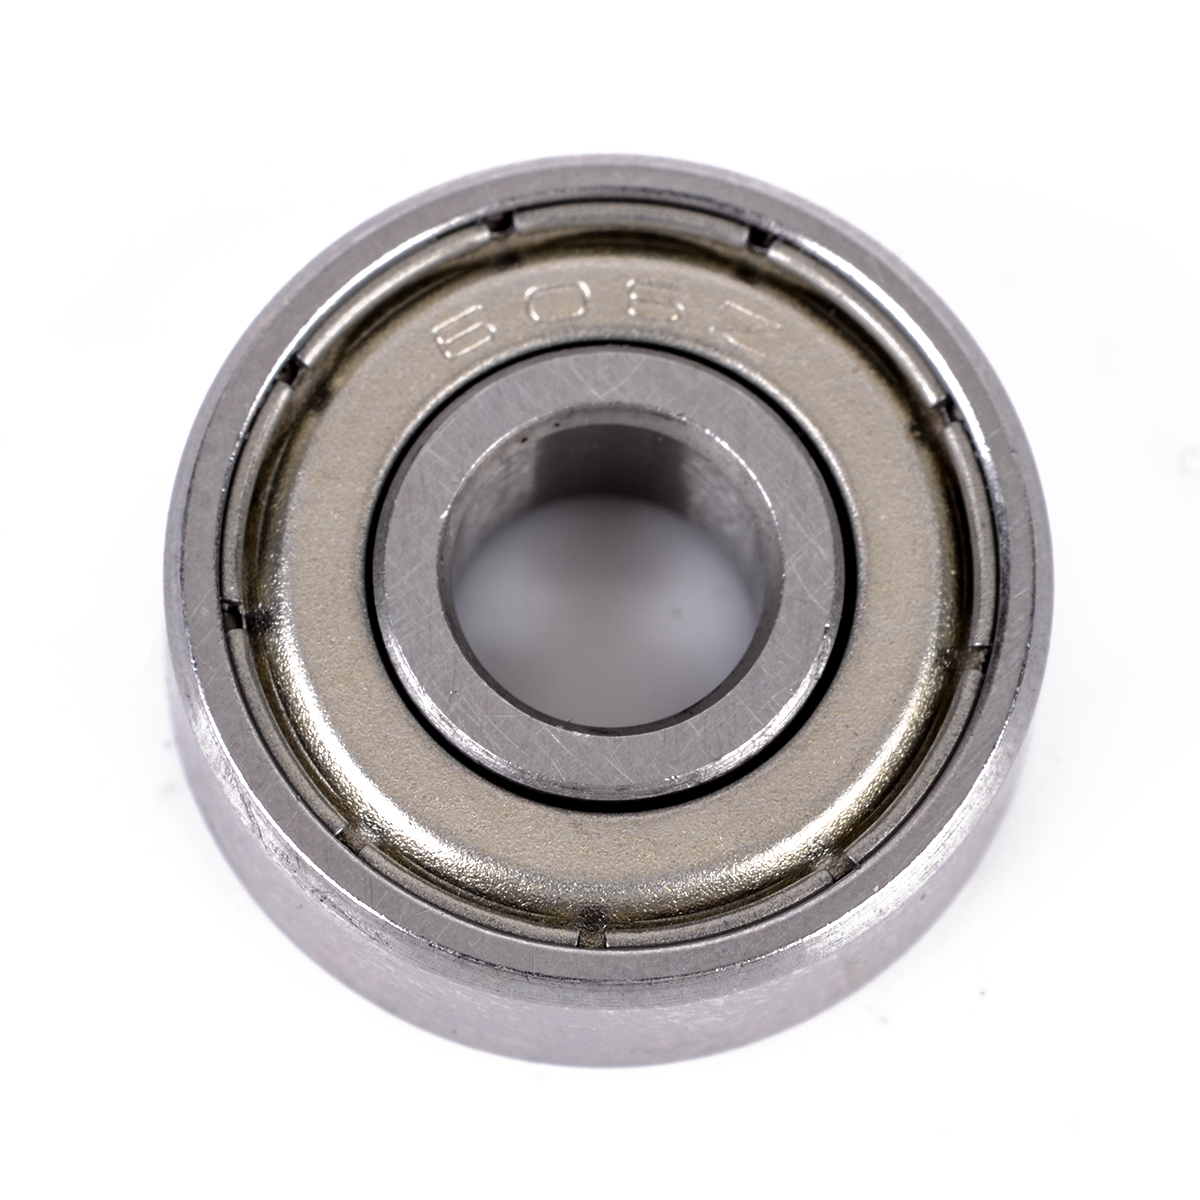 10pcs/lot 606 ZZ Metal Miniature Ball Bearings Deep Groove Shielded Bearings 6x17x6mm For Small Motors